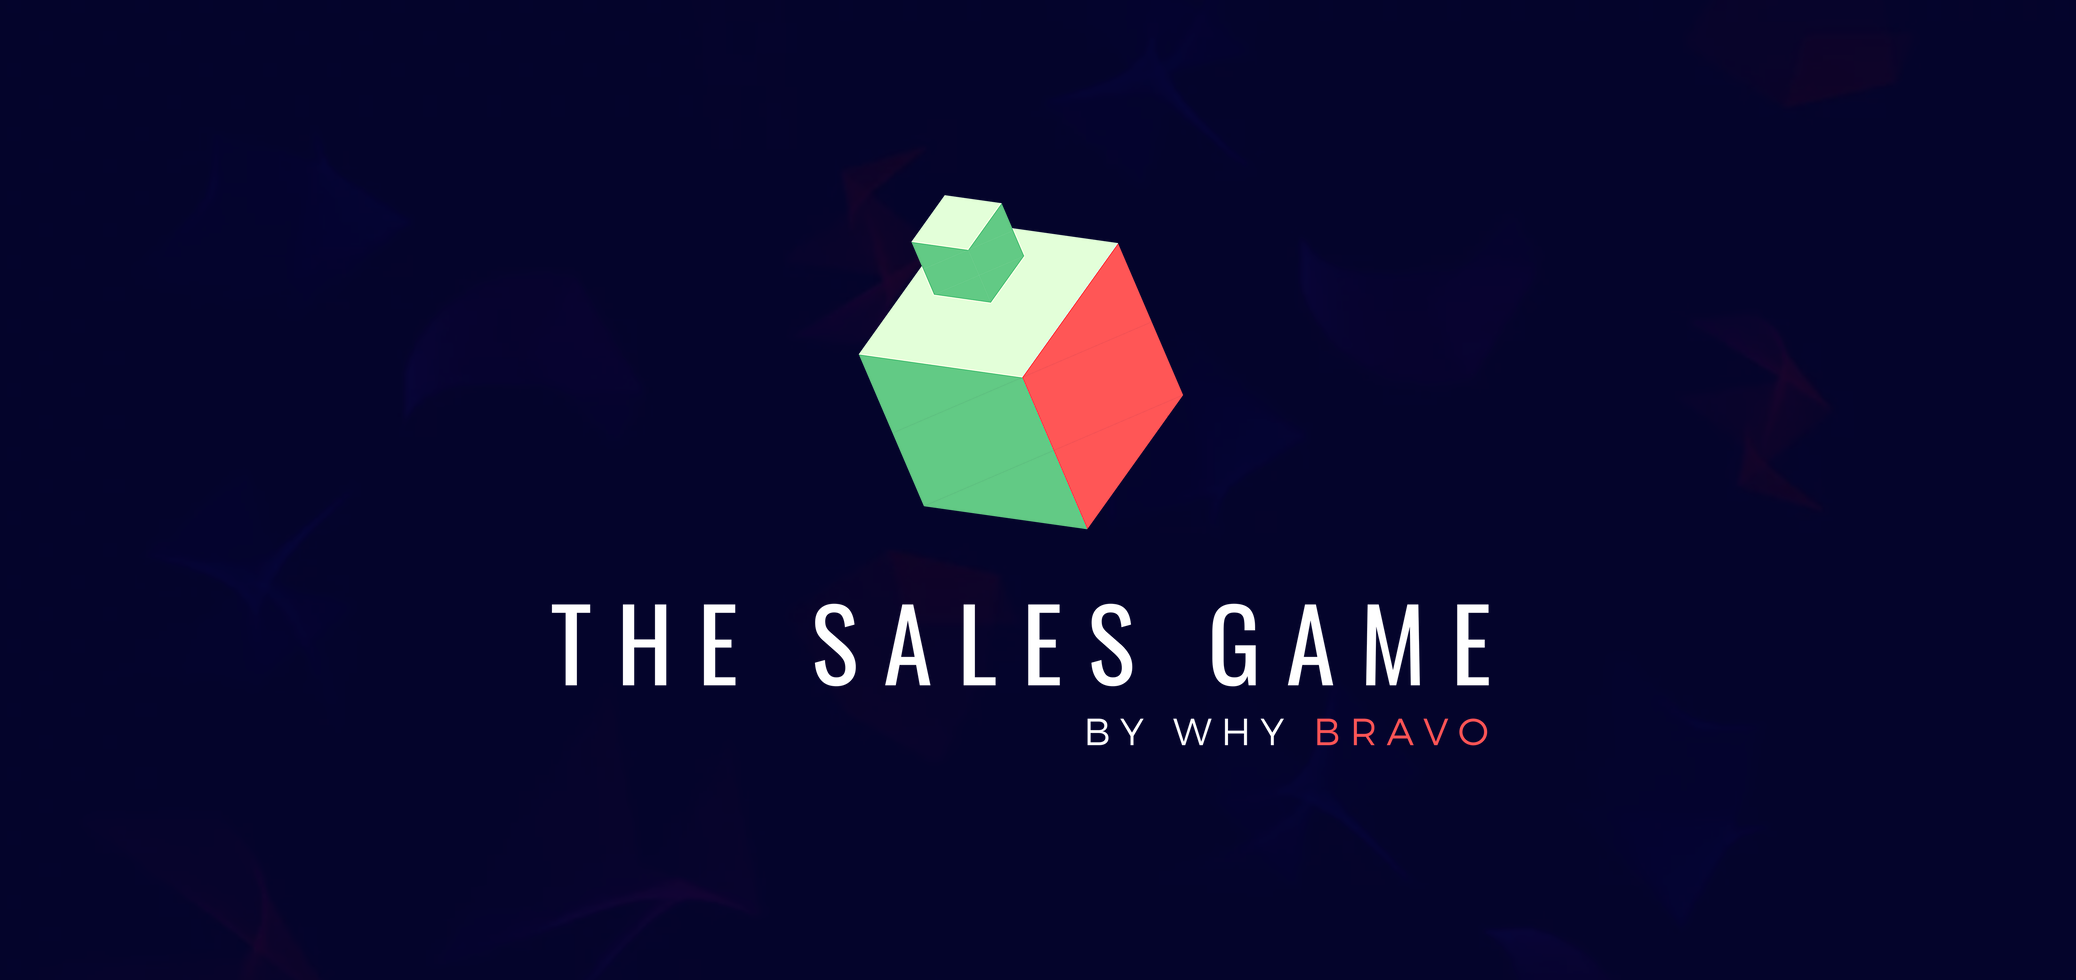 The Sales Game